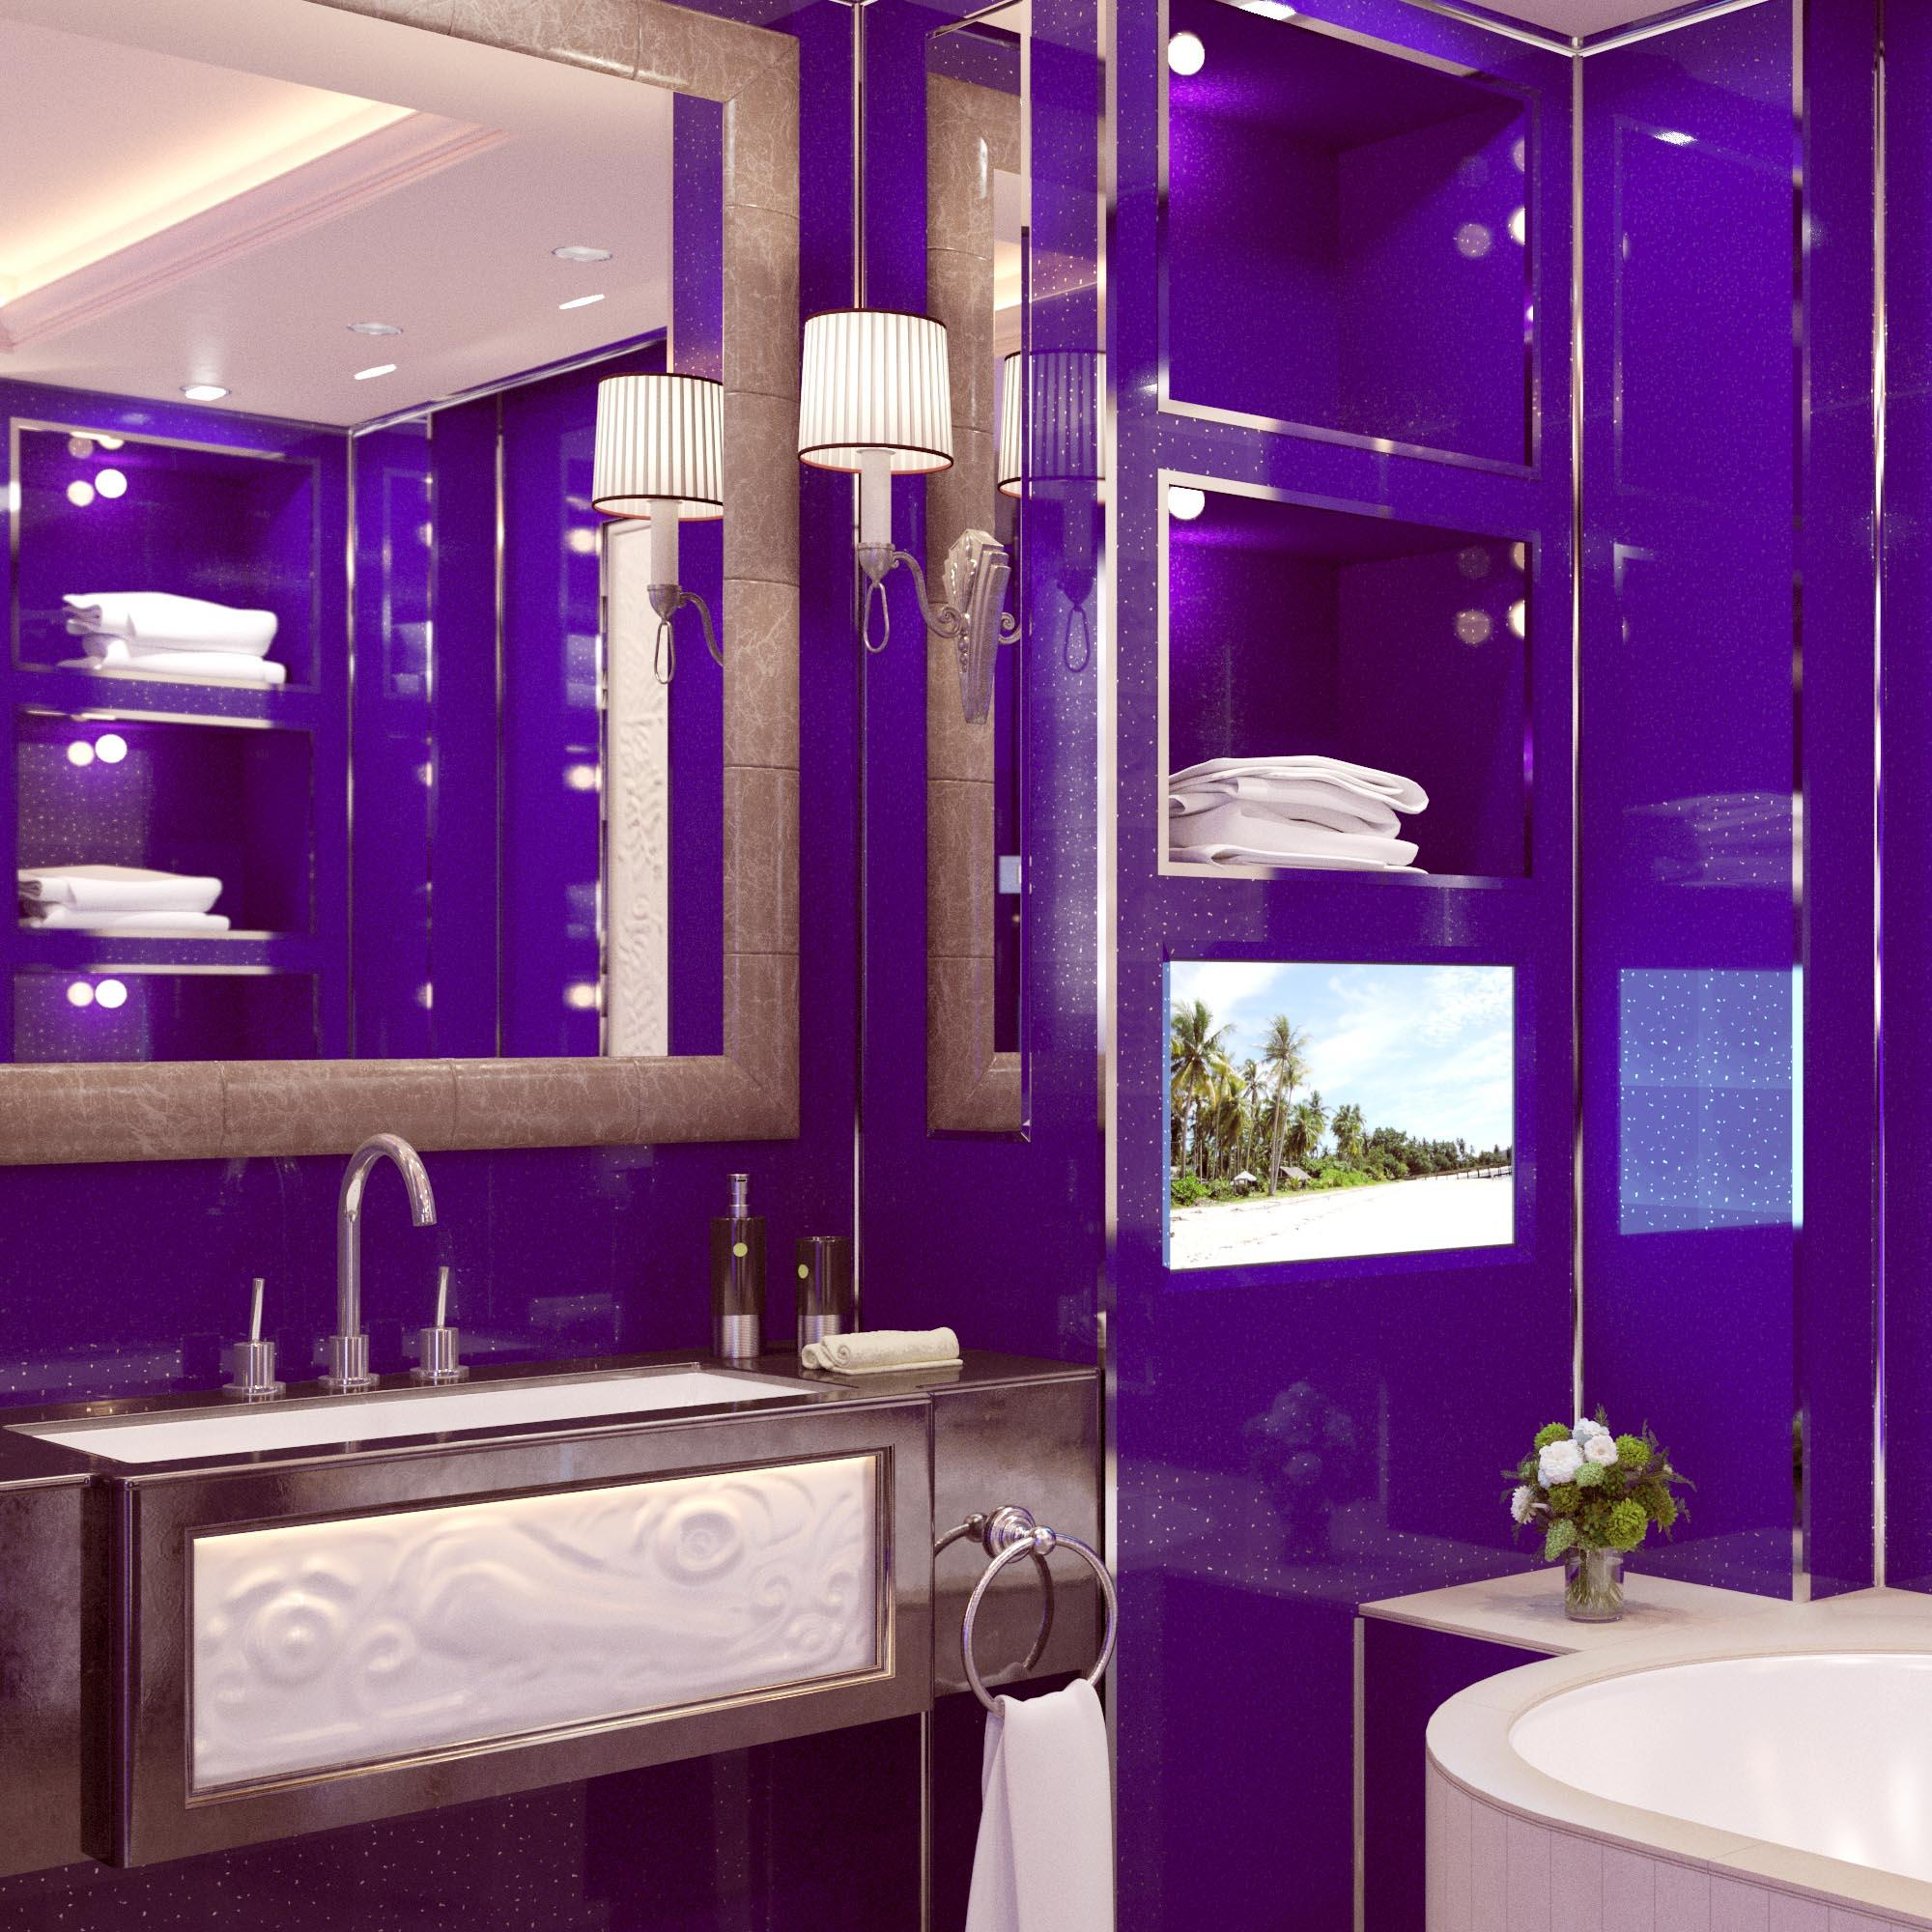 Purple Sparkle Bathroom Wall Panels Wet Wall Cladding ...